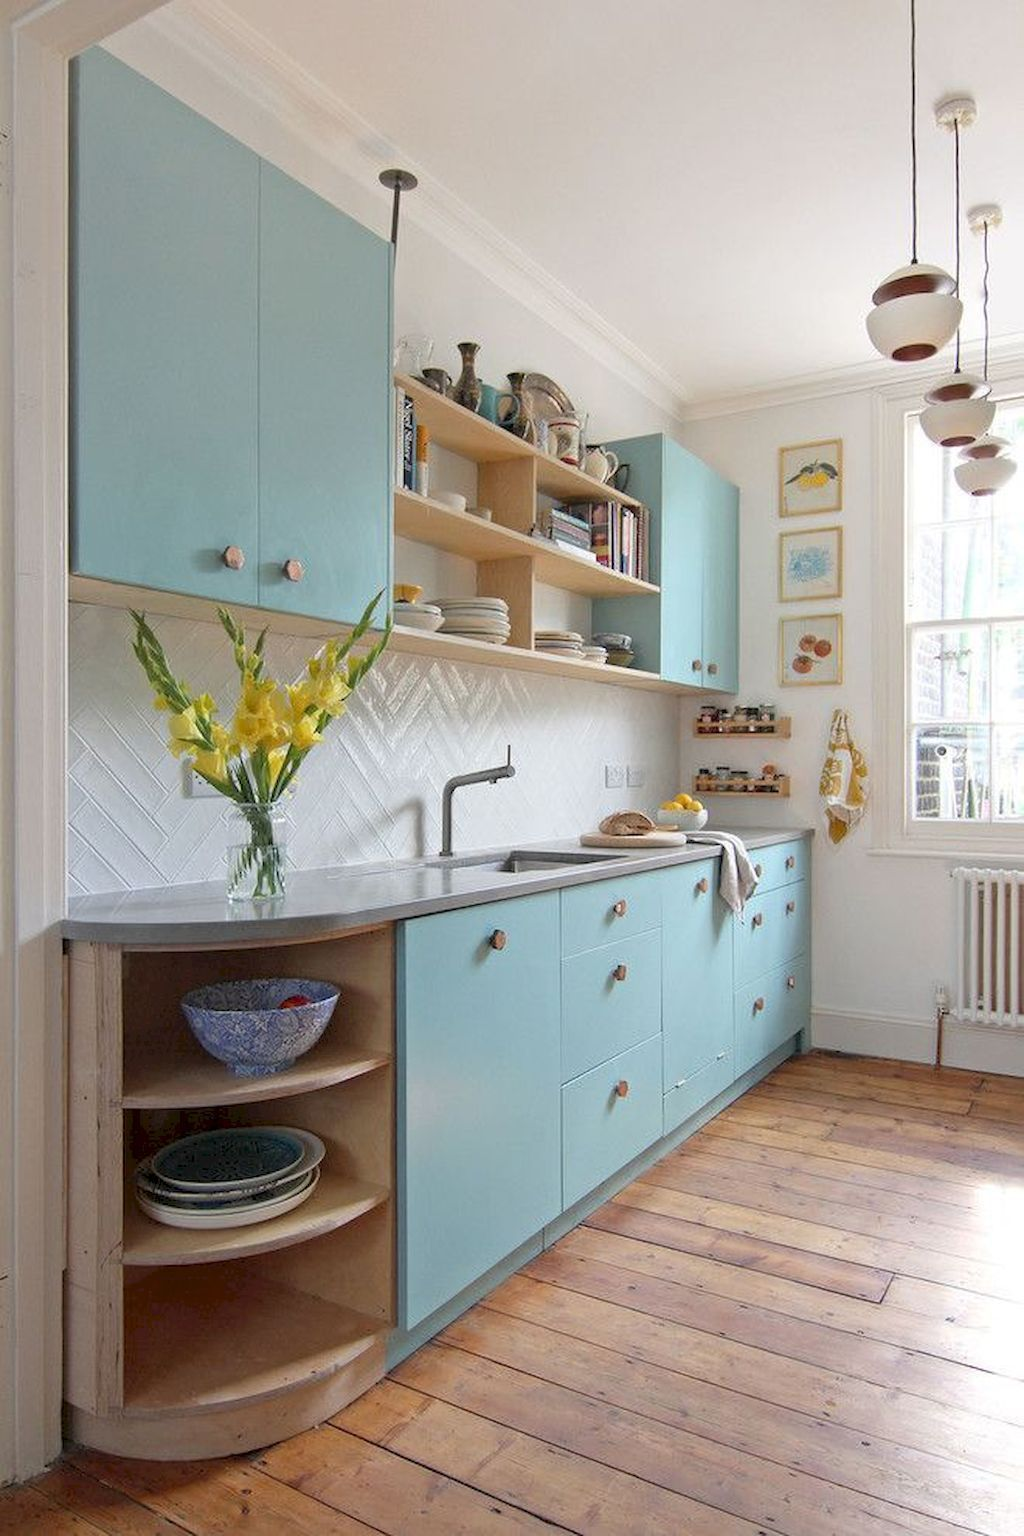 kitchen, wooden floor, white herringbone backsplash, blue kitchen cabinet, wooden shelves, grey top